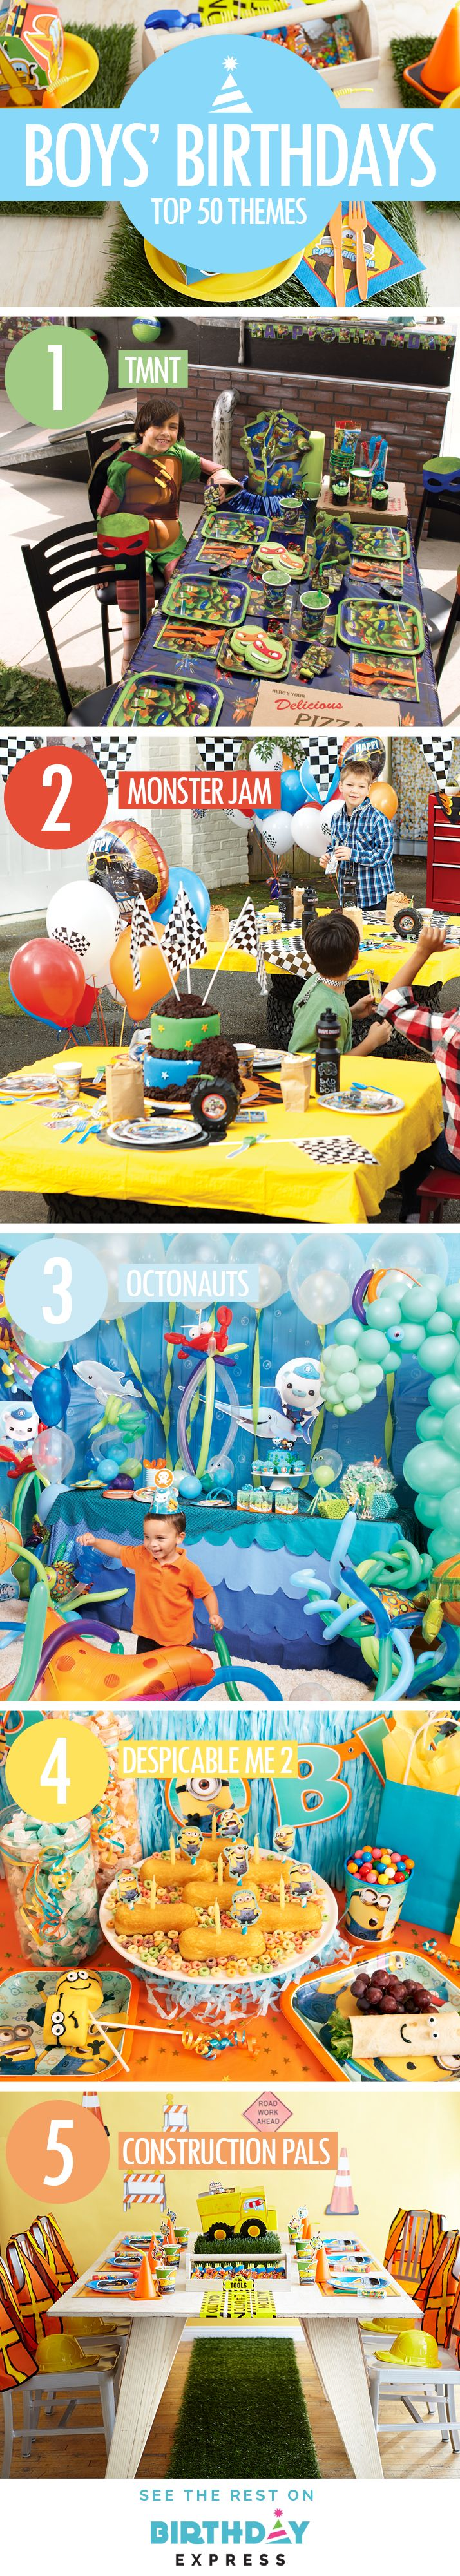 Visit BirthdayExpress.com to see the top 50 Birthday Party Themes For Boys of 2015! Here are the top 5:  (1) Ninja Turtles – Throw the raddest birthday of all time with these party ideas! (2) Monster Jam – Dirt pudding for party food and epic monster truck decorations. (3) Octonauts – Invite Captain Barnacles and the whole crew! (4) Despicable Me 2 – Is anything more adorable than a Minion party theme? (5) Construction Pals – Build the ultimate party for your aspiring builder.